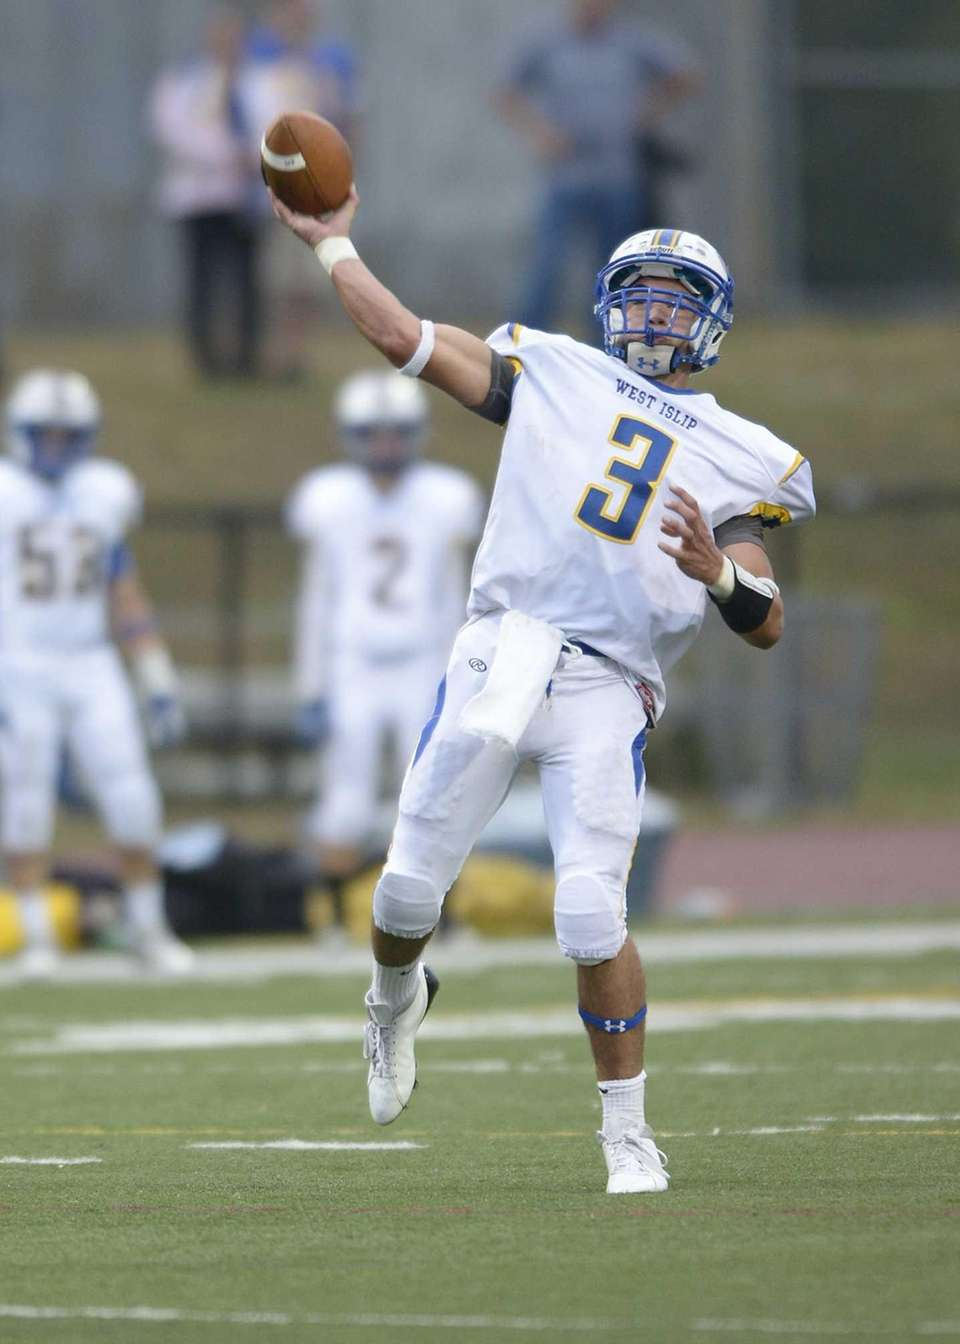 West Islip's Sam Ilario looks to the end